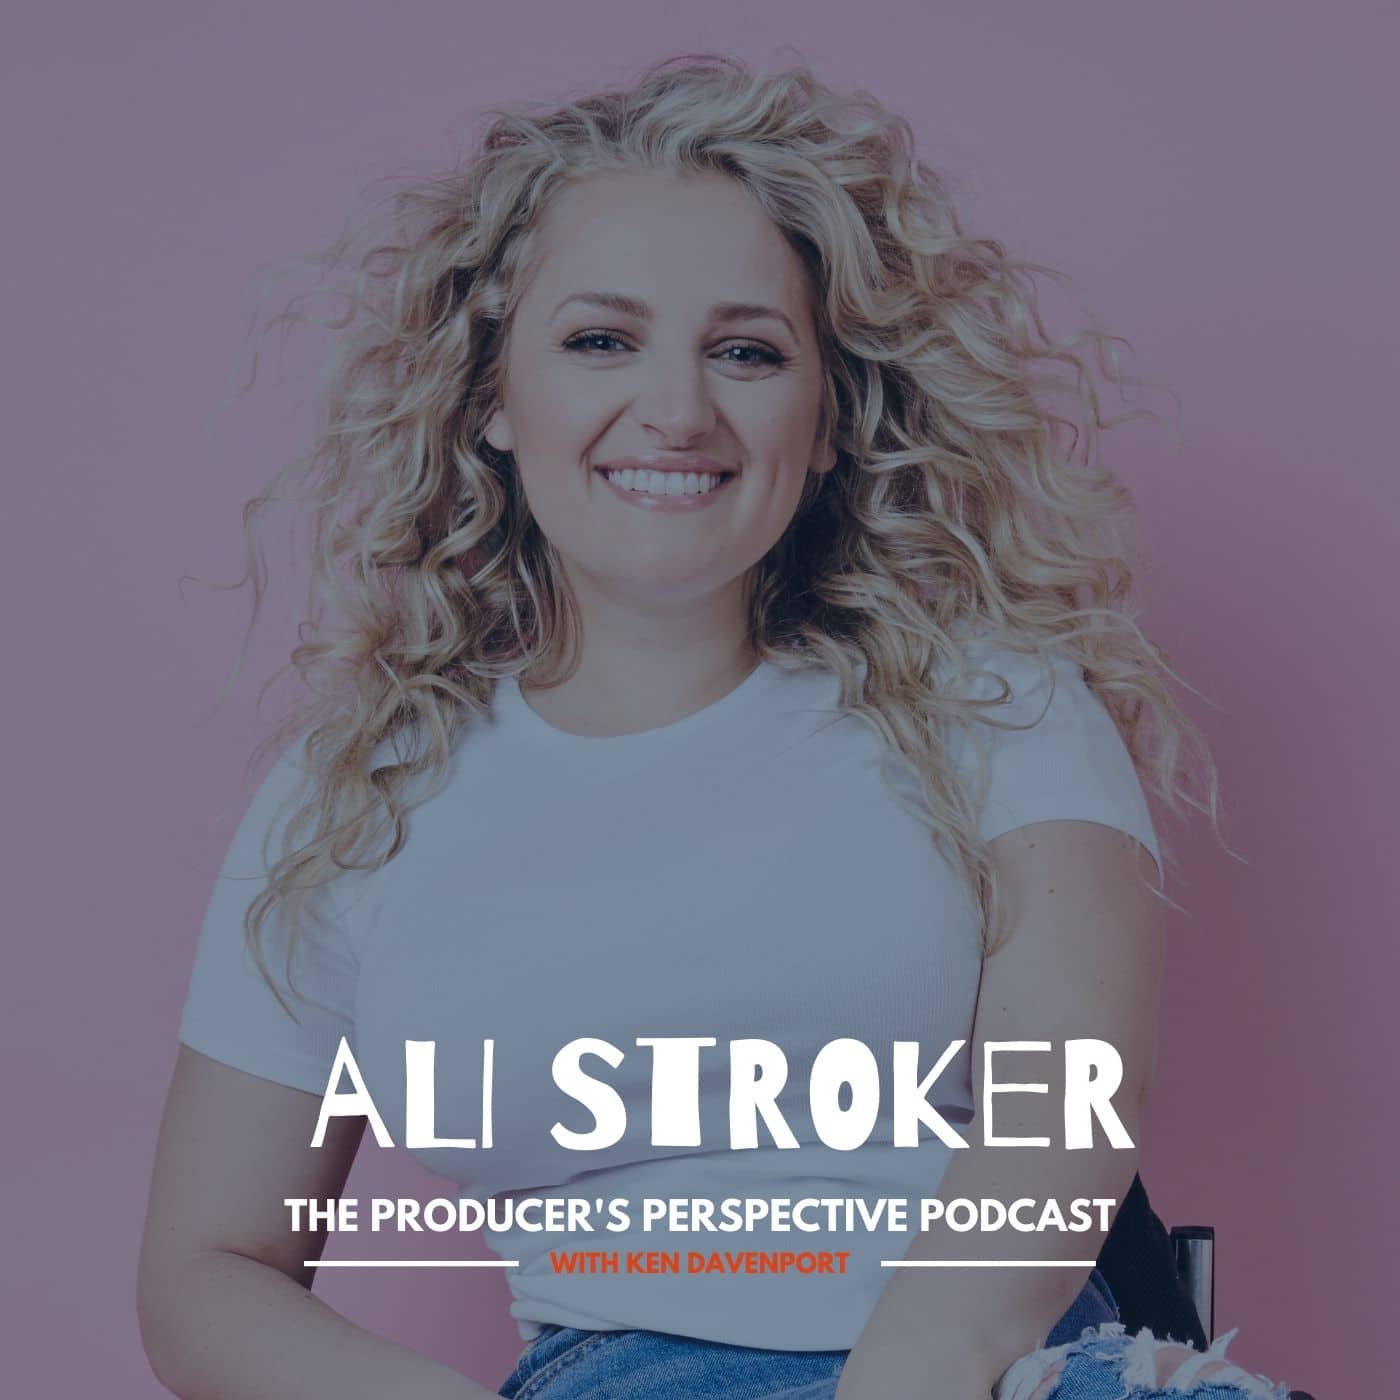 Ken Davenport's The Producer's Perspective Podcast Episode 199 - Ali Stroker